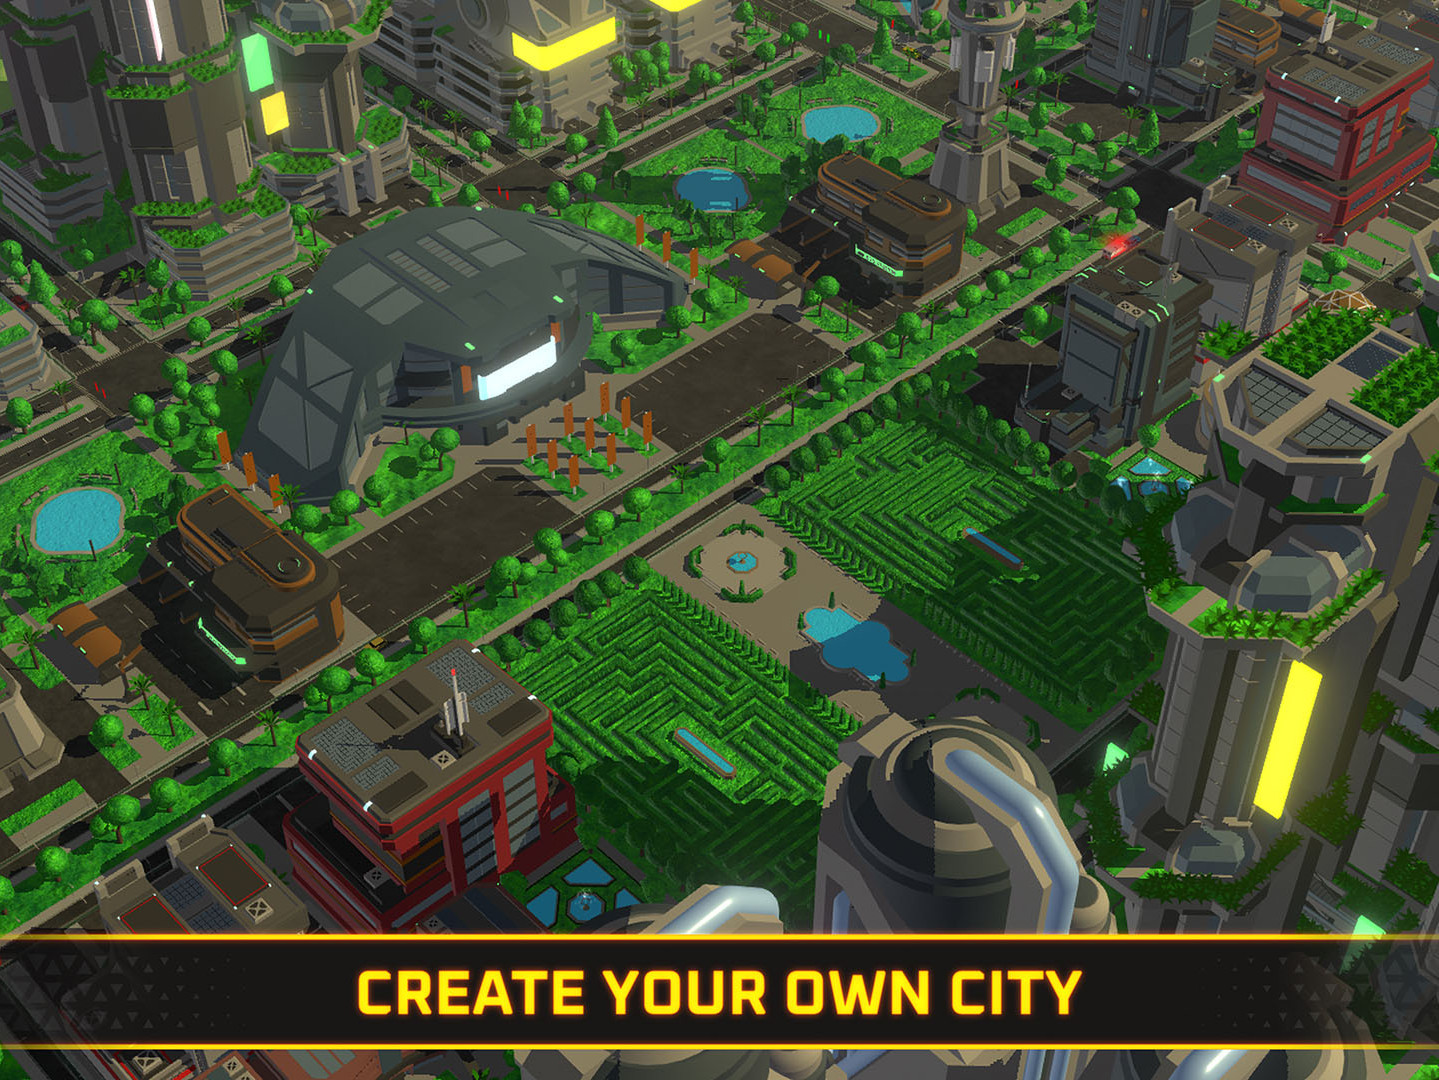 Create your own city